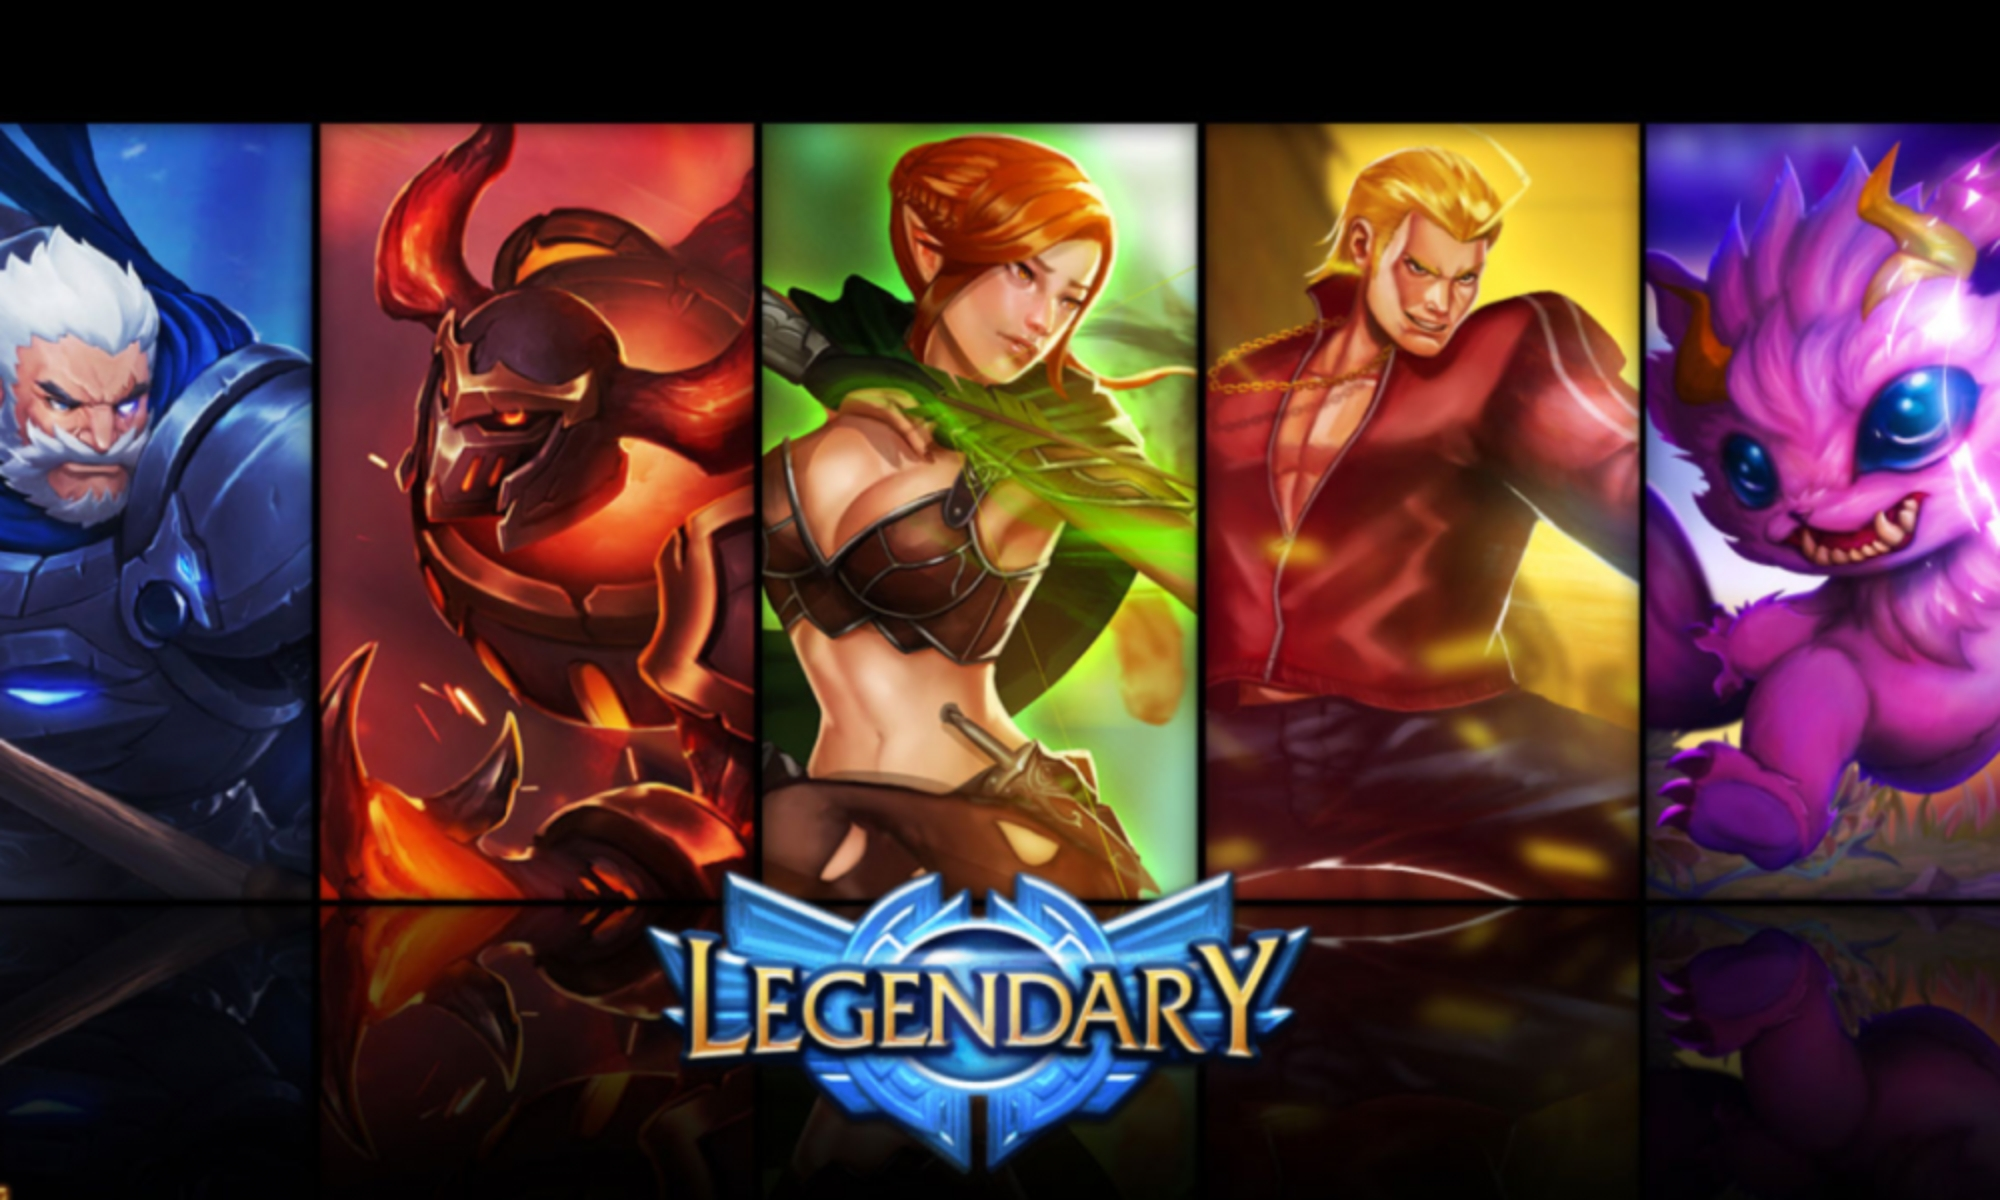 Win Money in Legendary Free Slot Game by Swintt